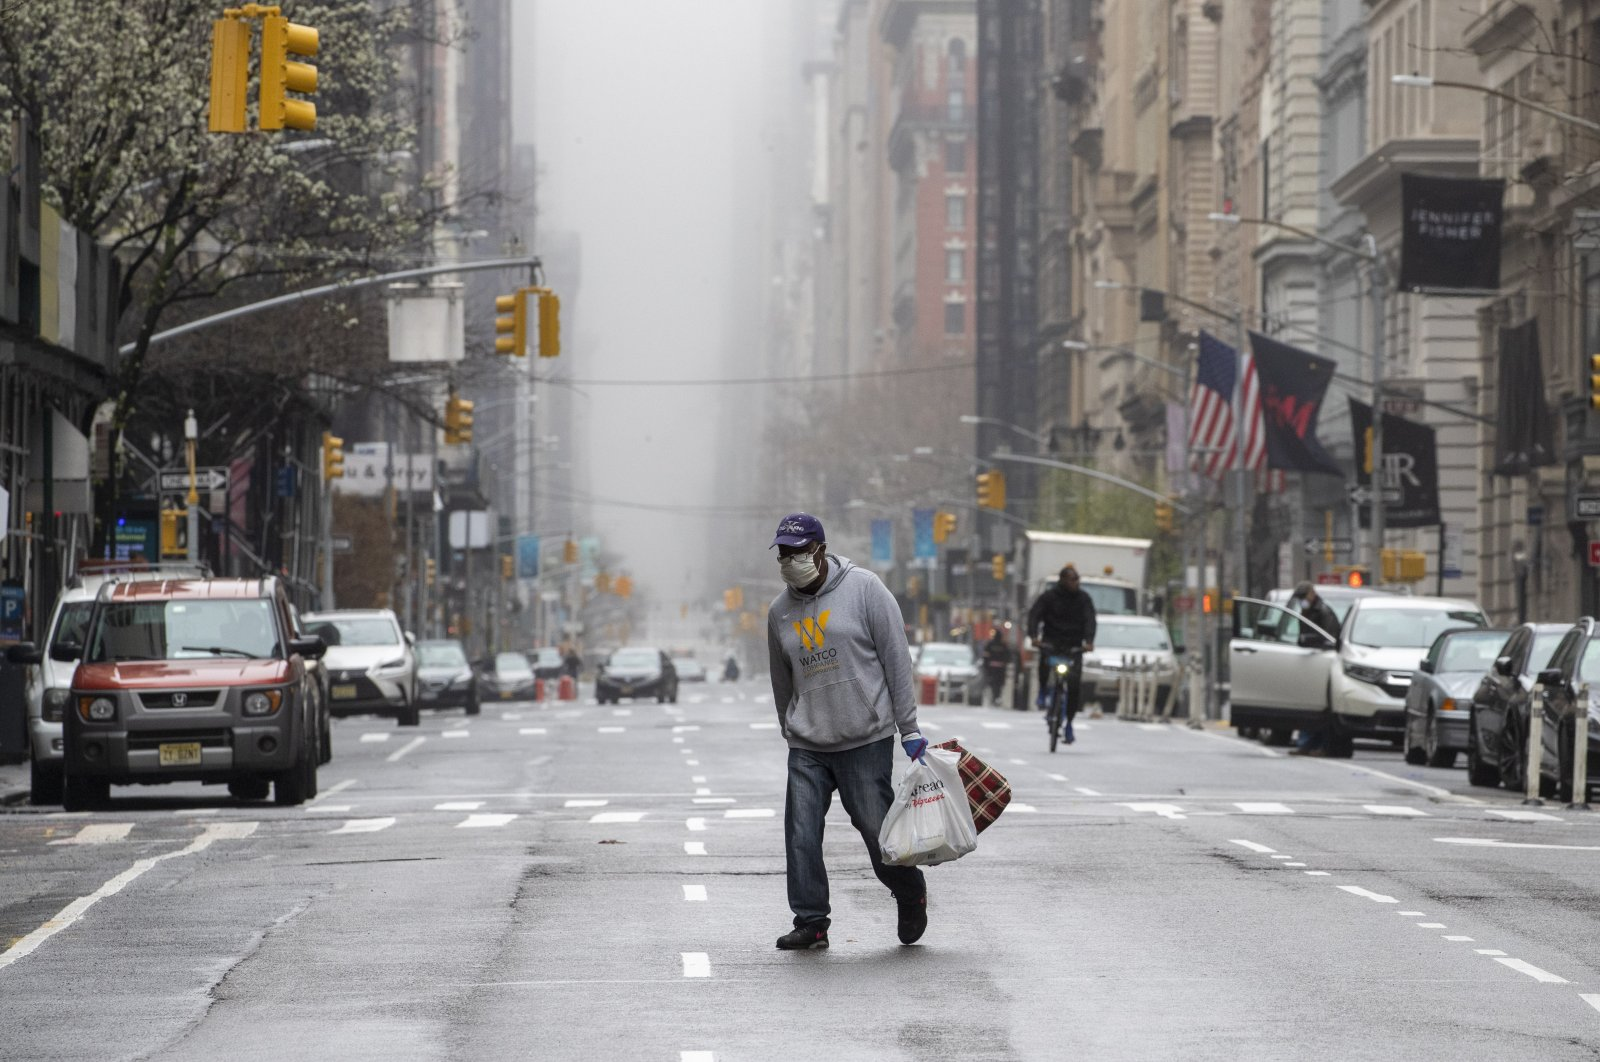 A man wearing a face mask walks across the middle of 5th Avenue in Midtown Manhattan, New York City, Sunday, March 29, 2020. (AP Photo)